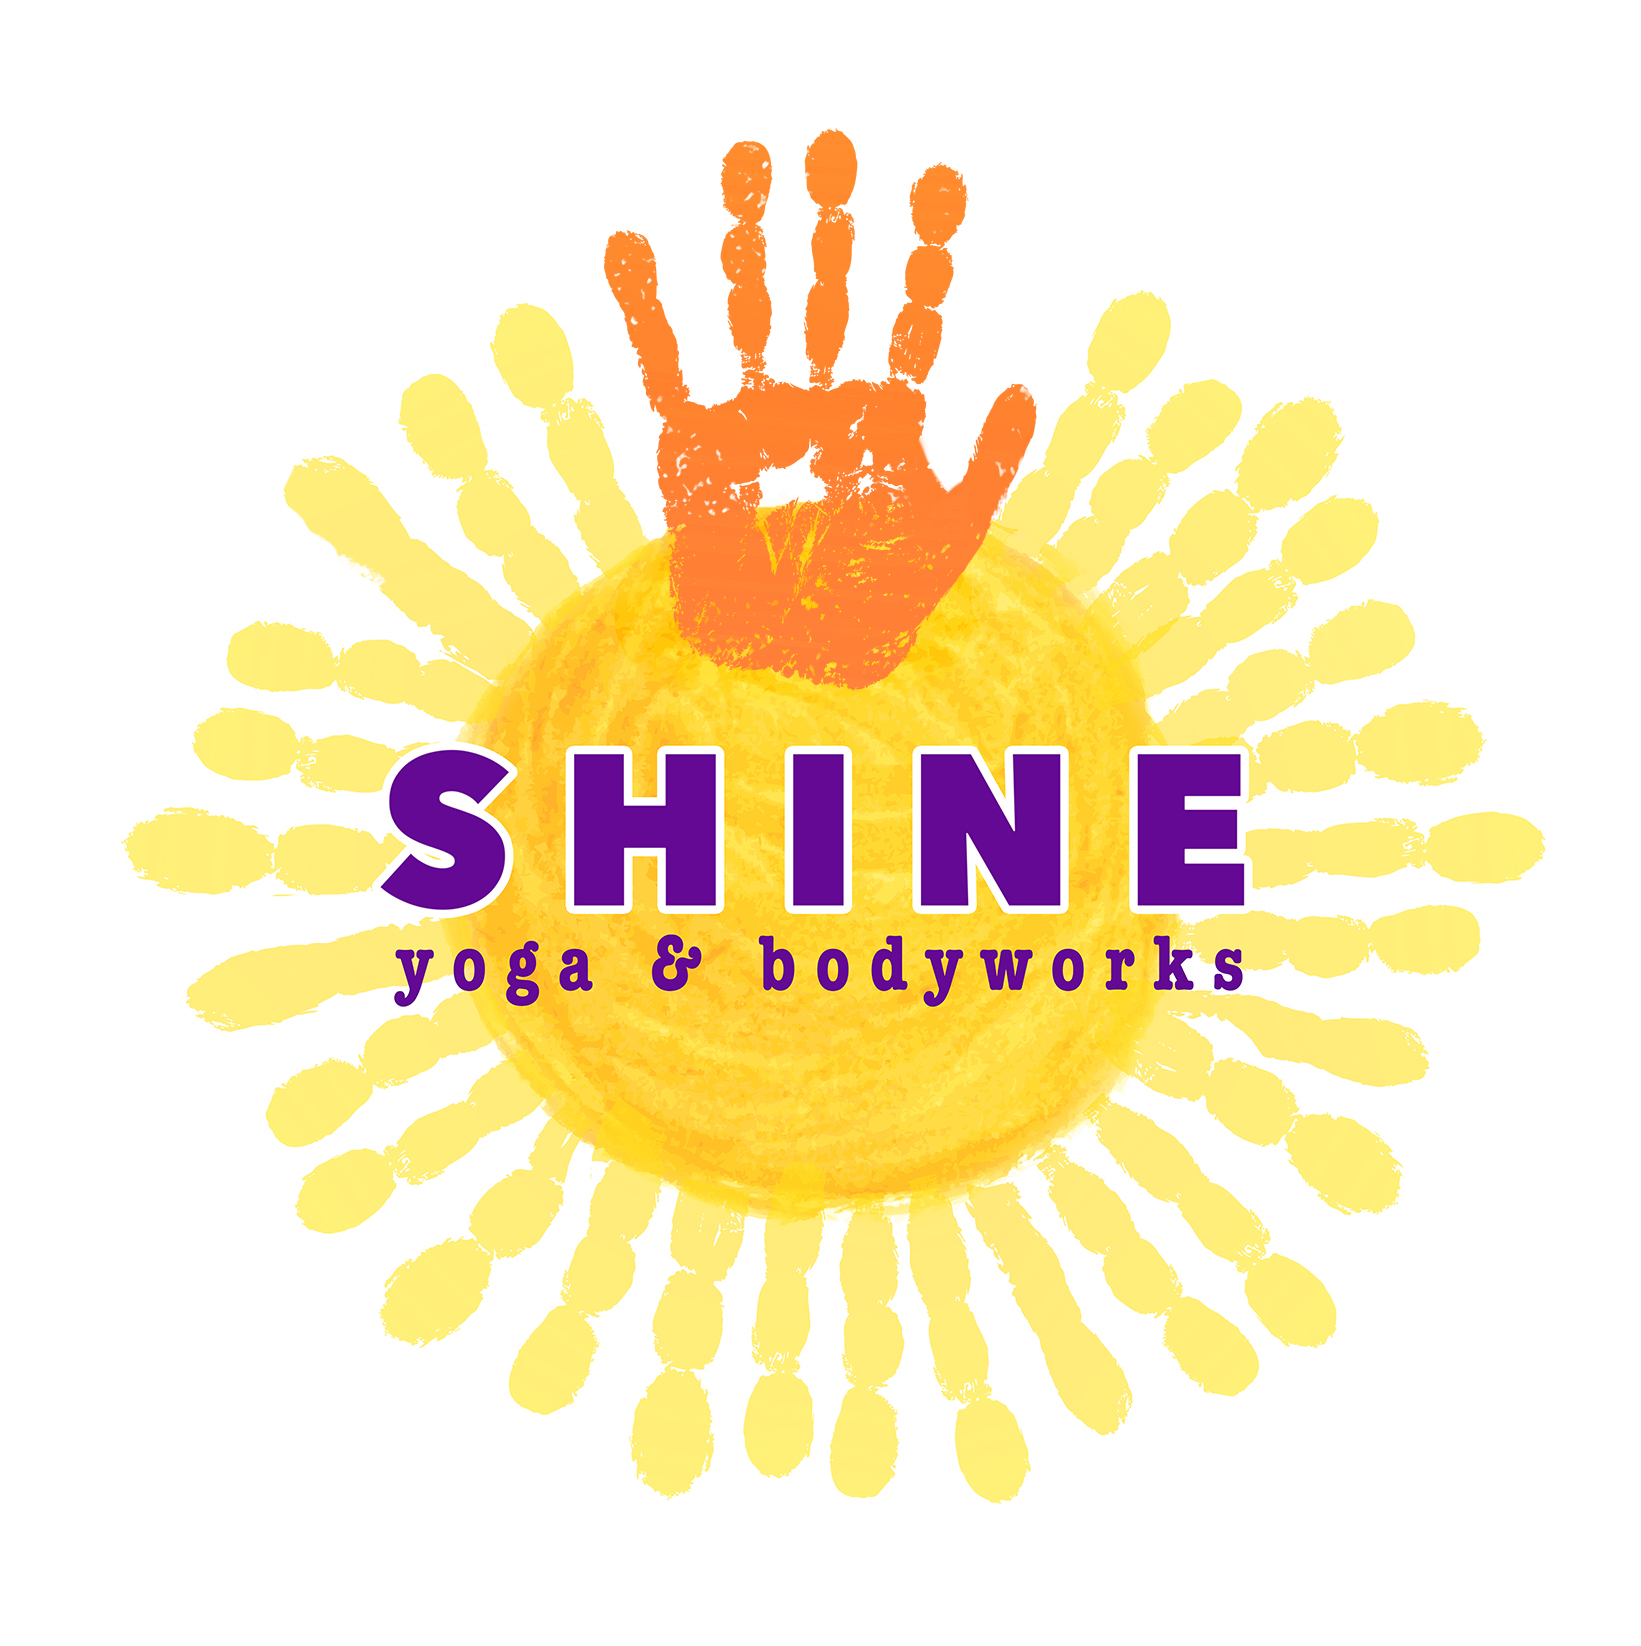 Shine! Yoga & Bodyworks